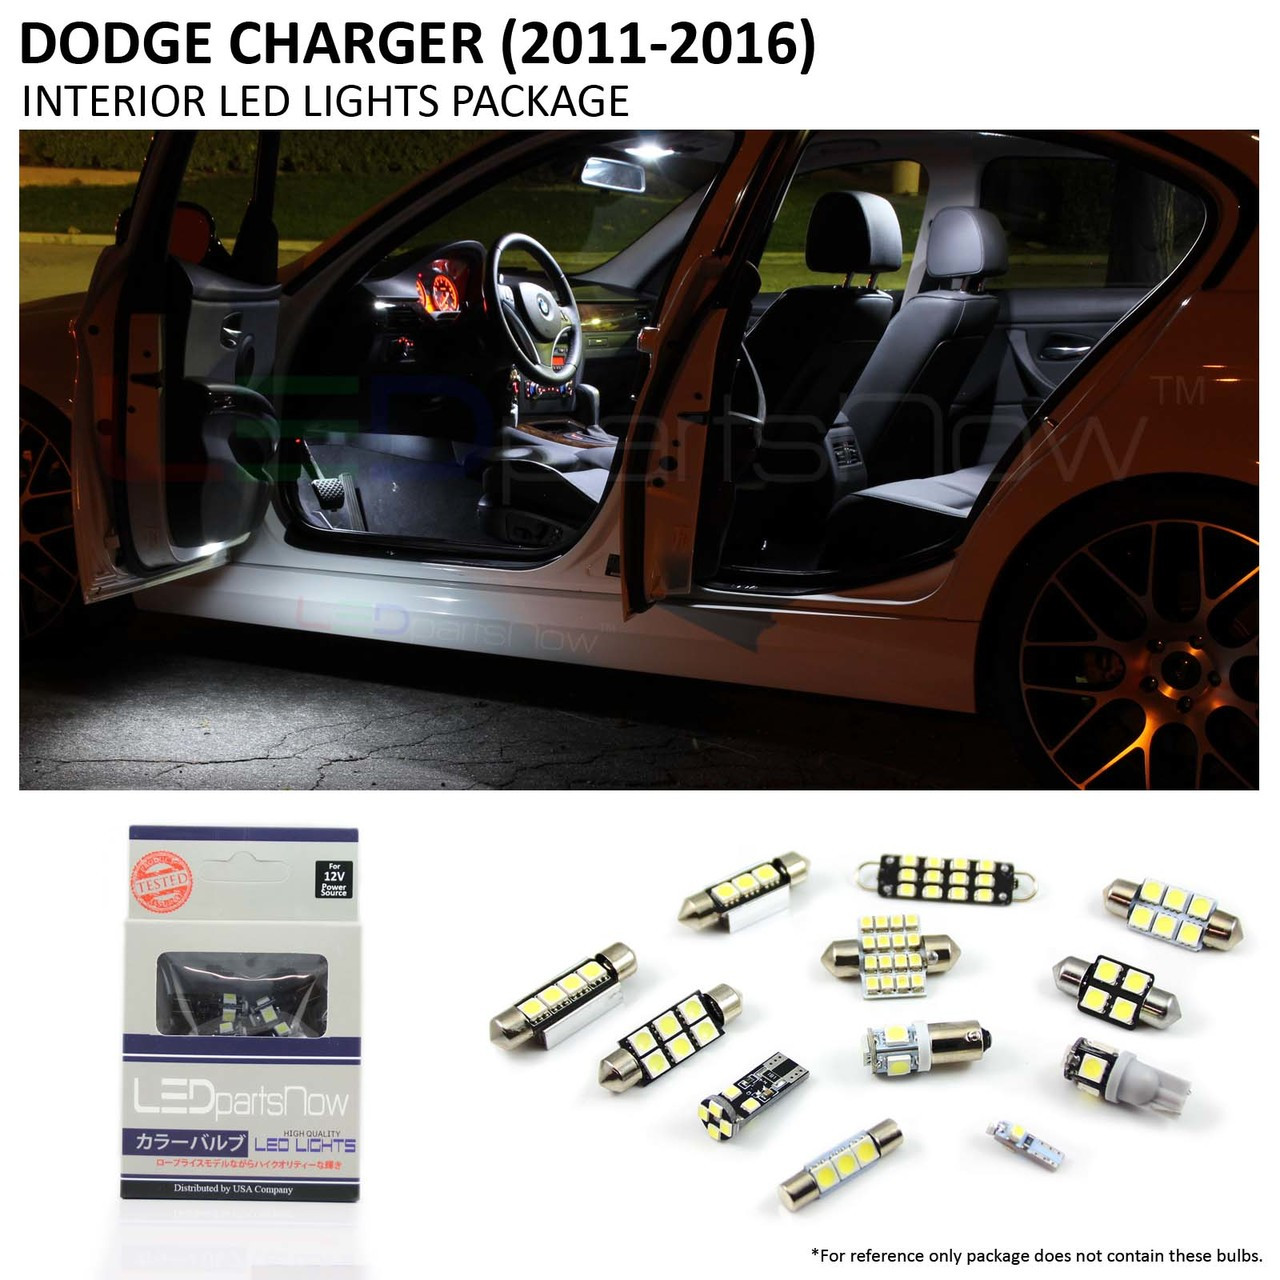 2011 2016 Dodge Chargert Interior Led Lights Package